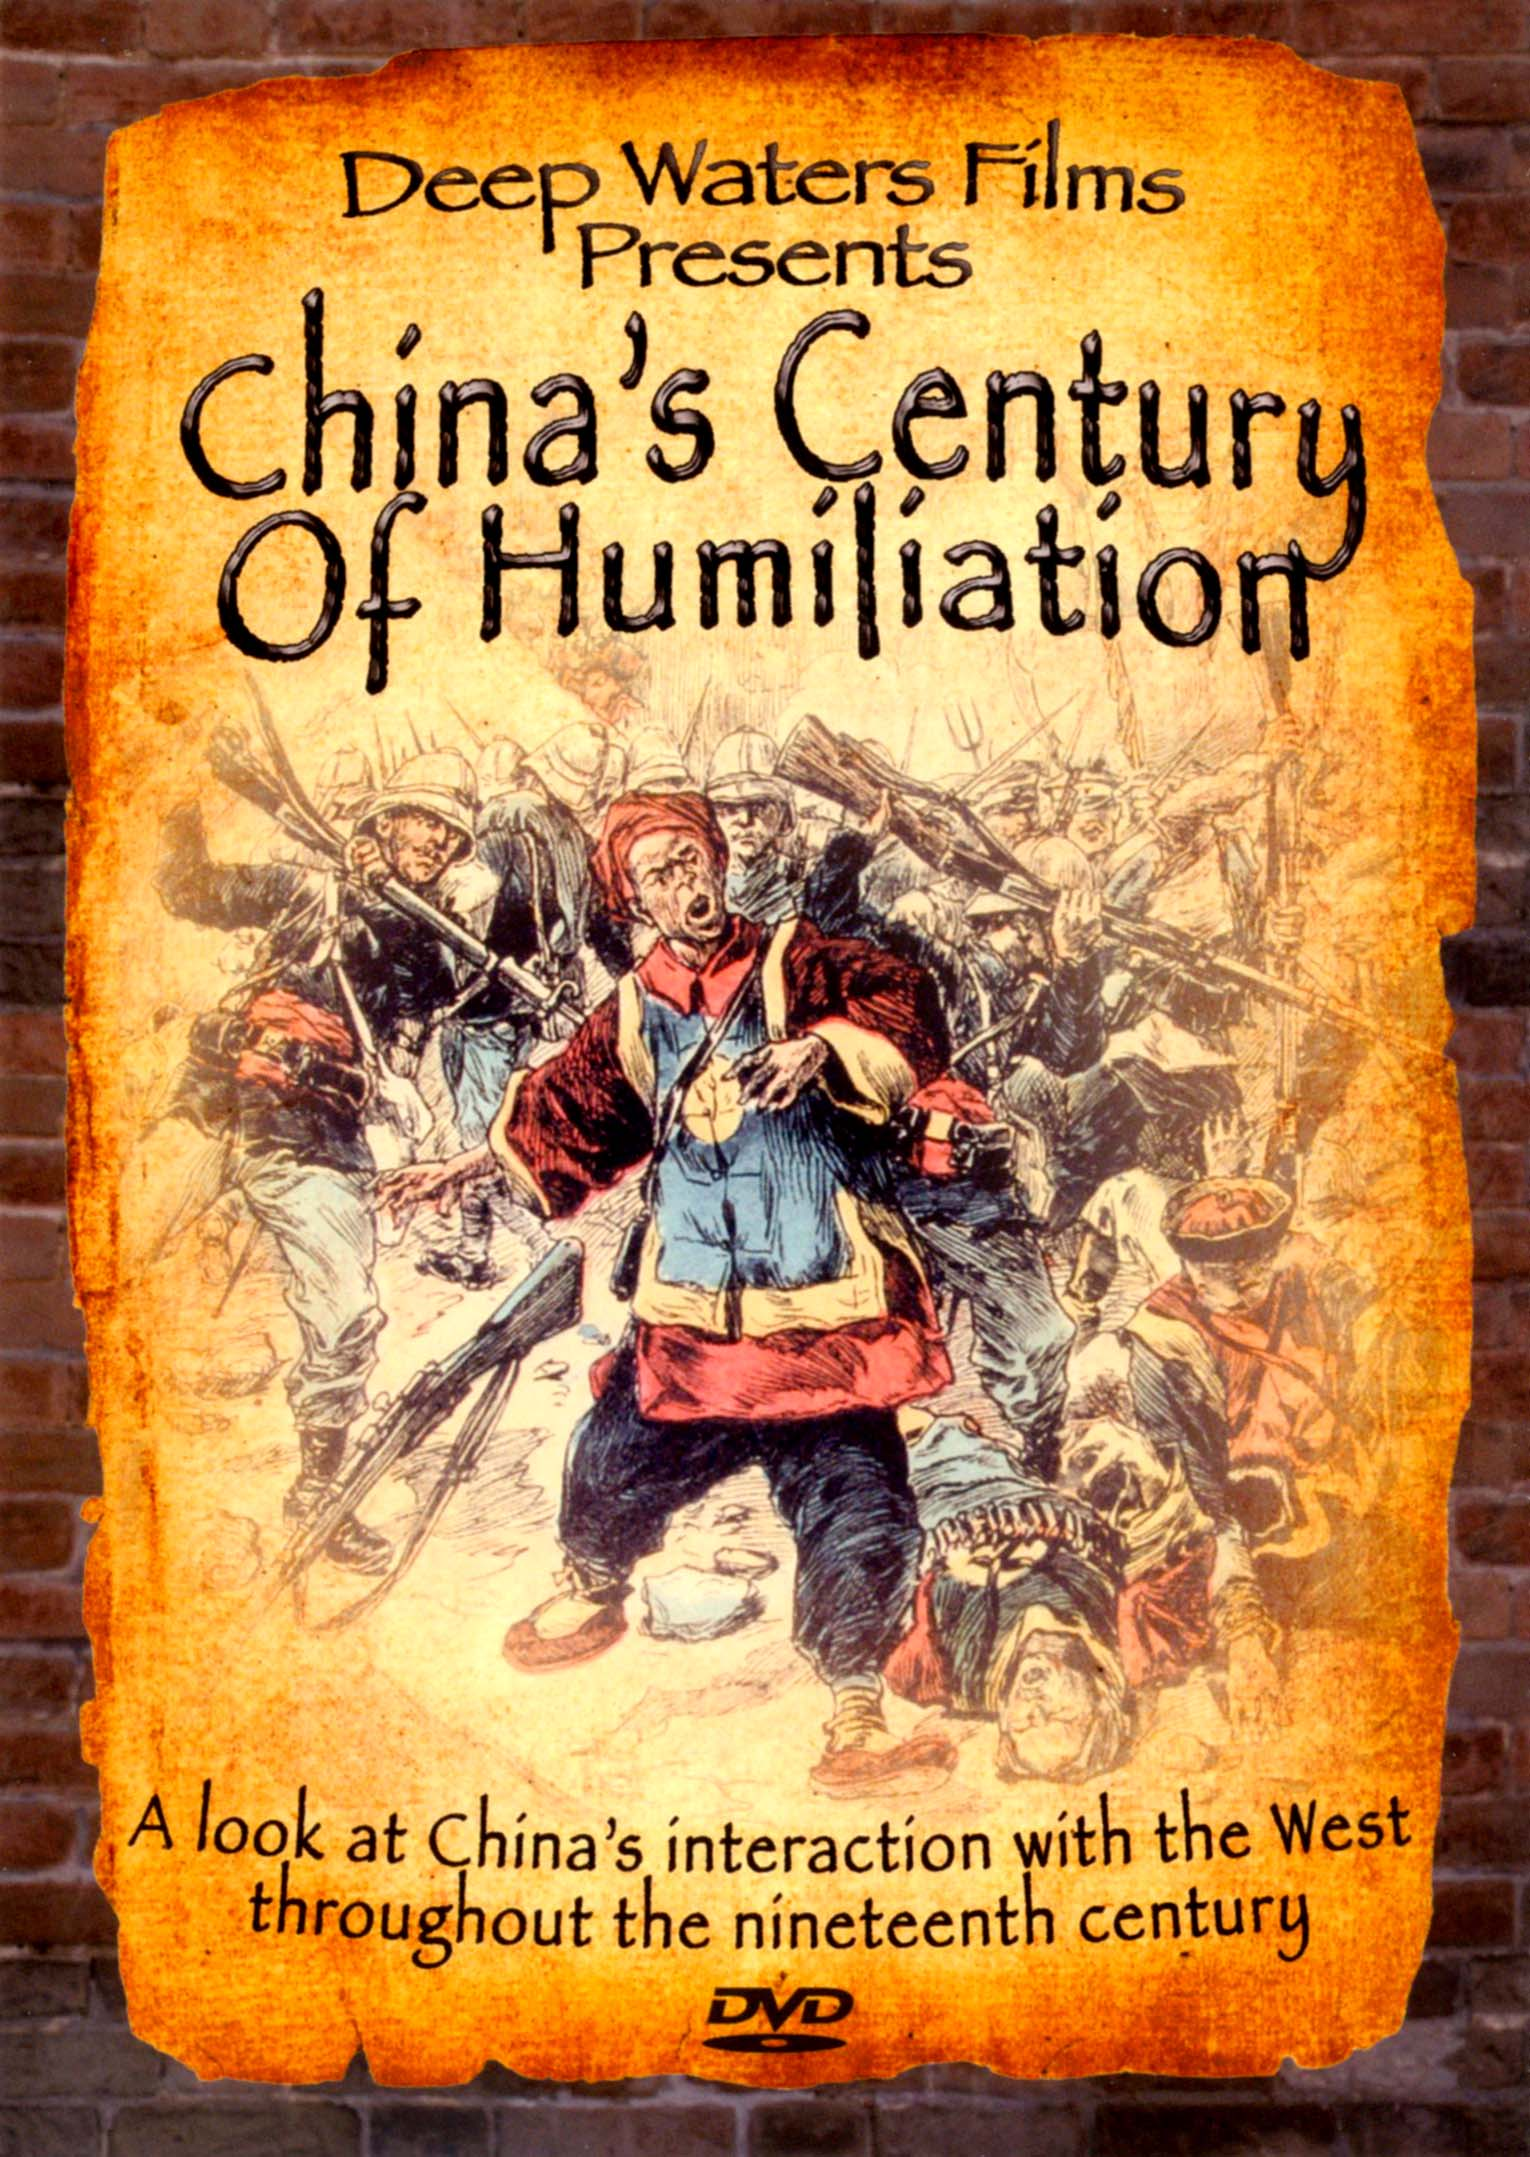 China's Century of Humiliation